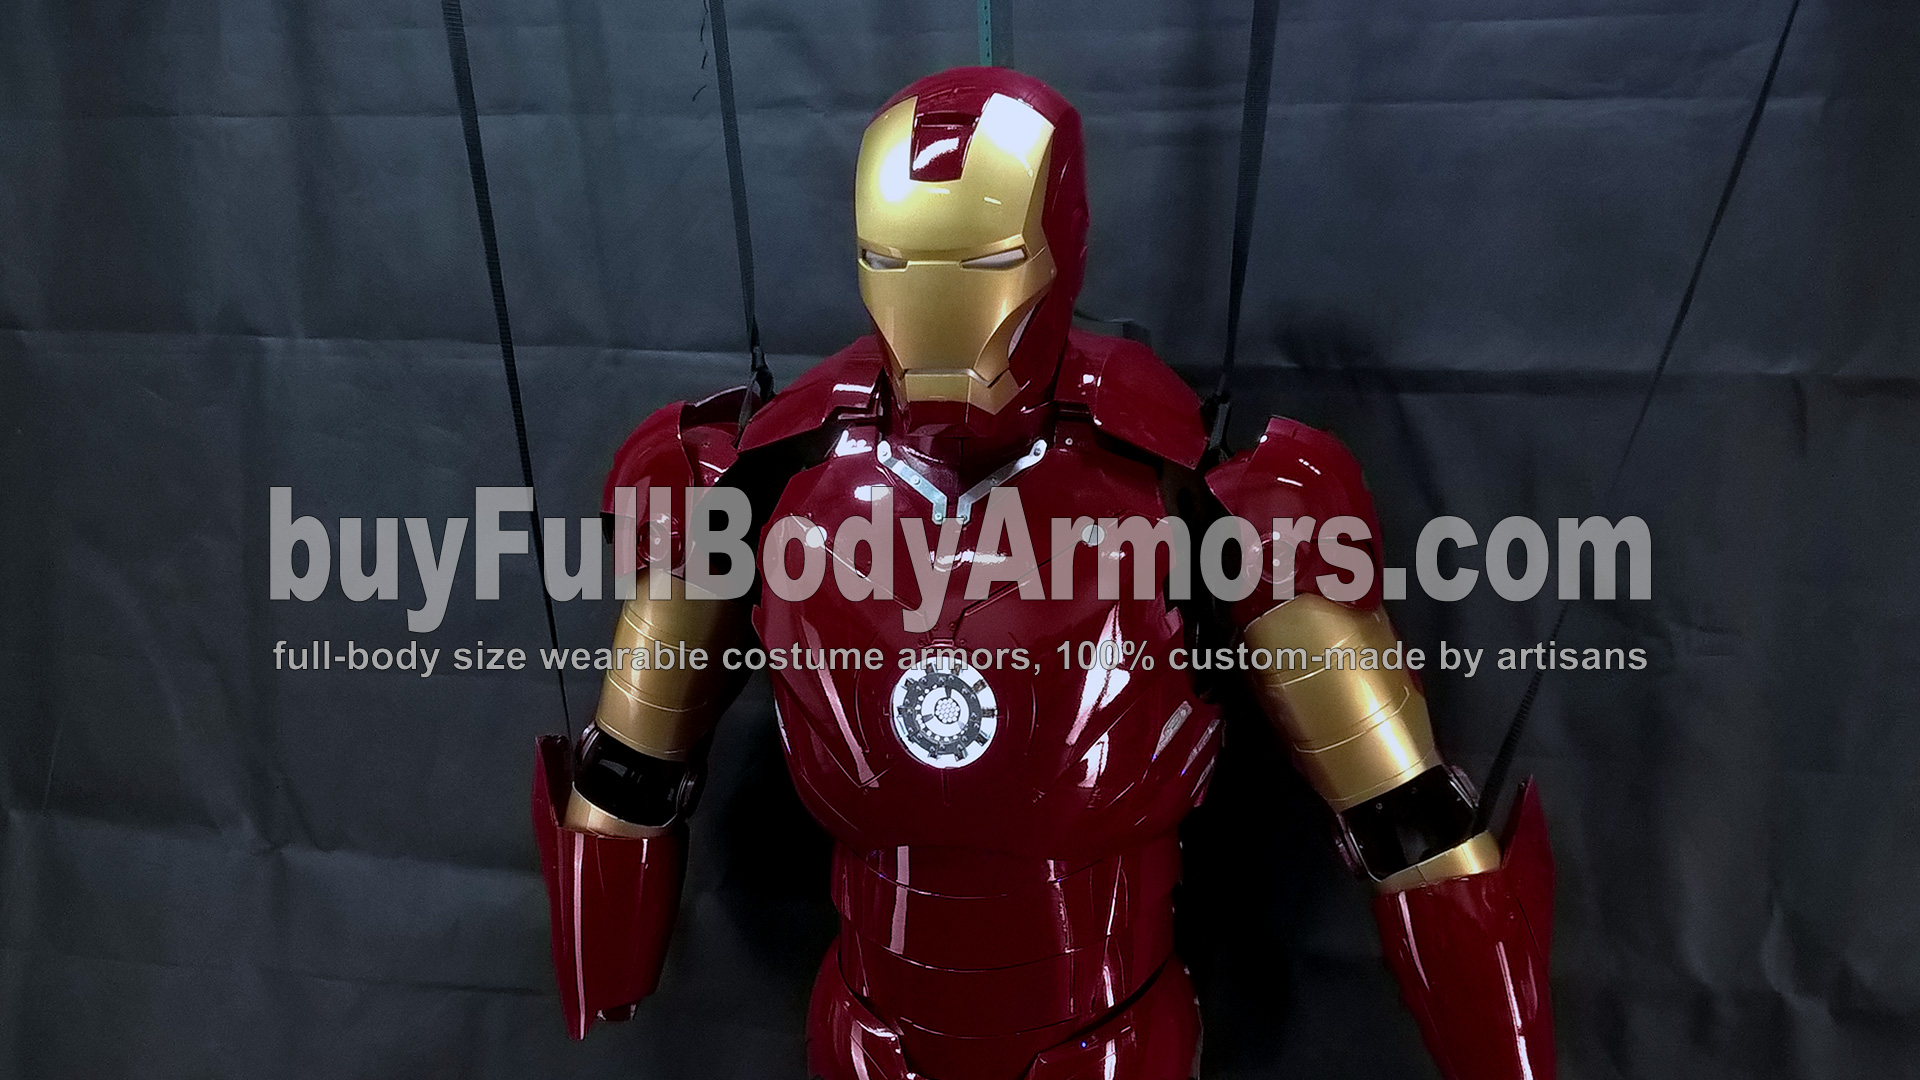 The Wearable Iron Man Suit Mark 3 III Armor Costume - Top Half Prototype 4